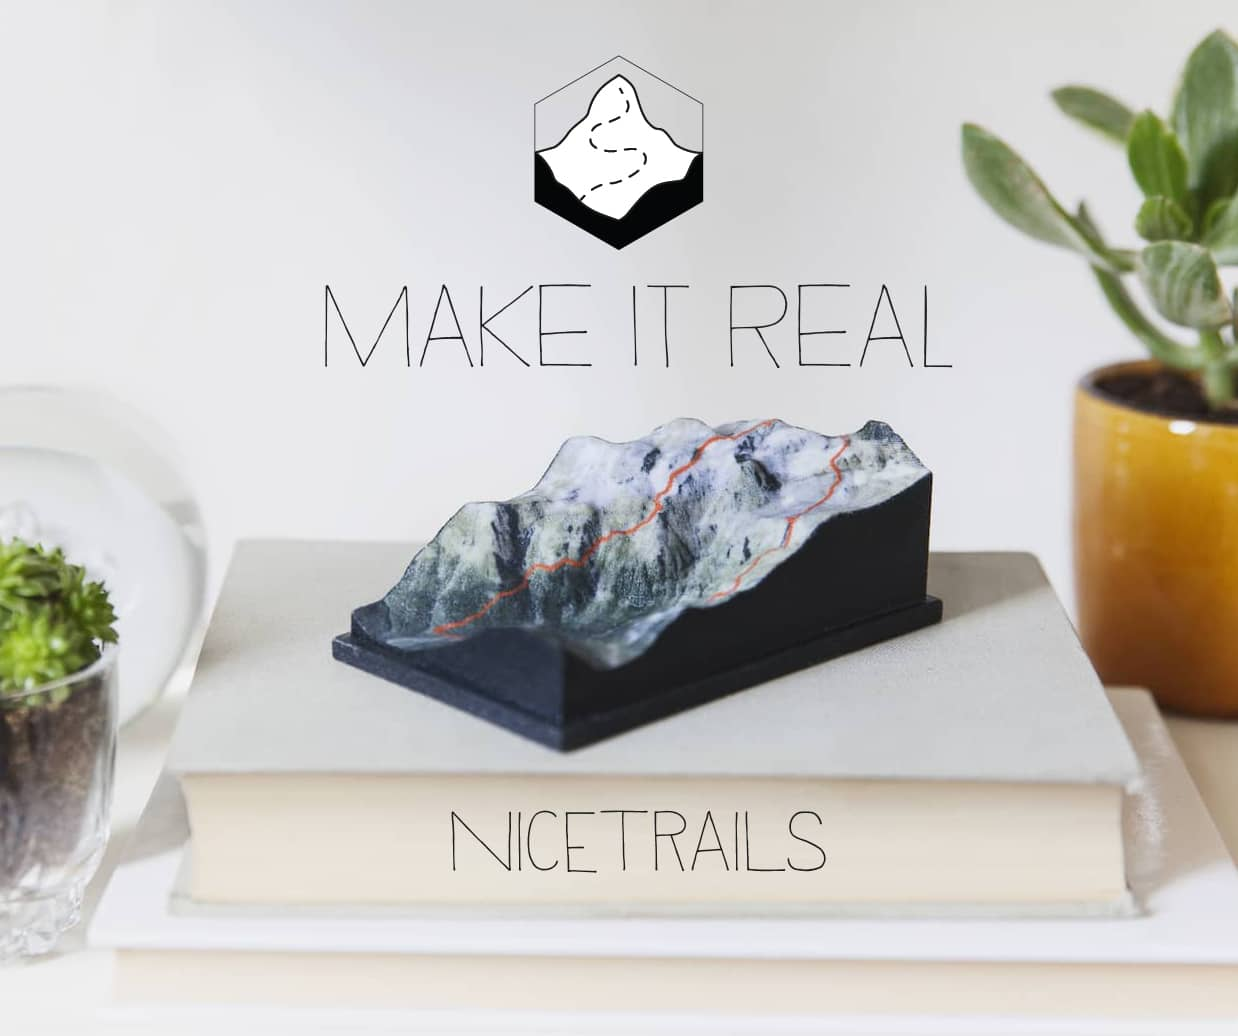 nicetrails - Tangible Cartography - 3D Printed TerrainB2C platform to generate terrain from GPX files and map locations.